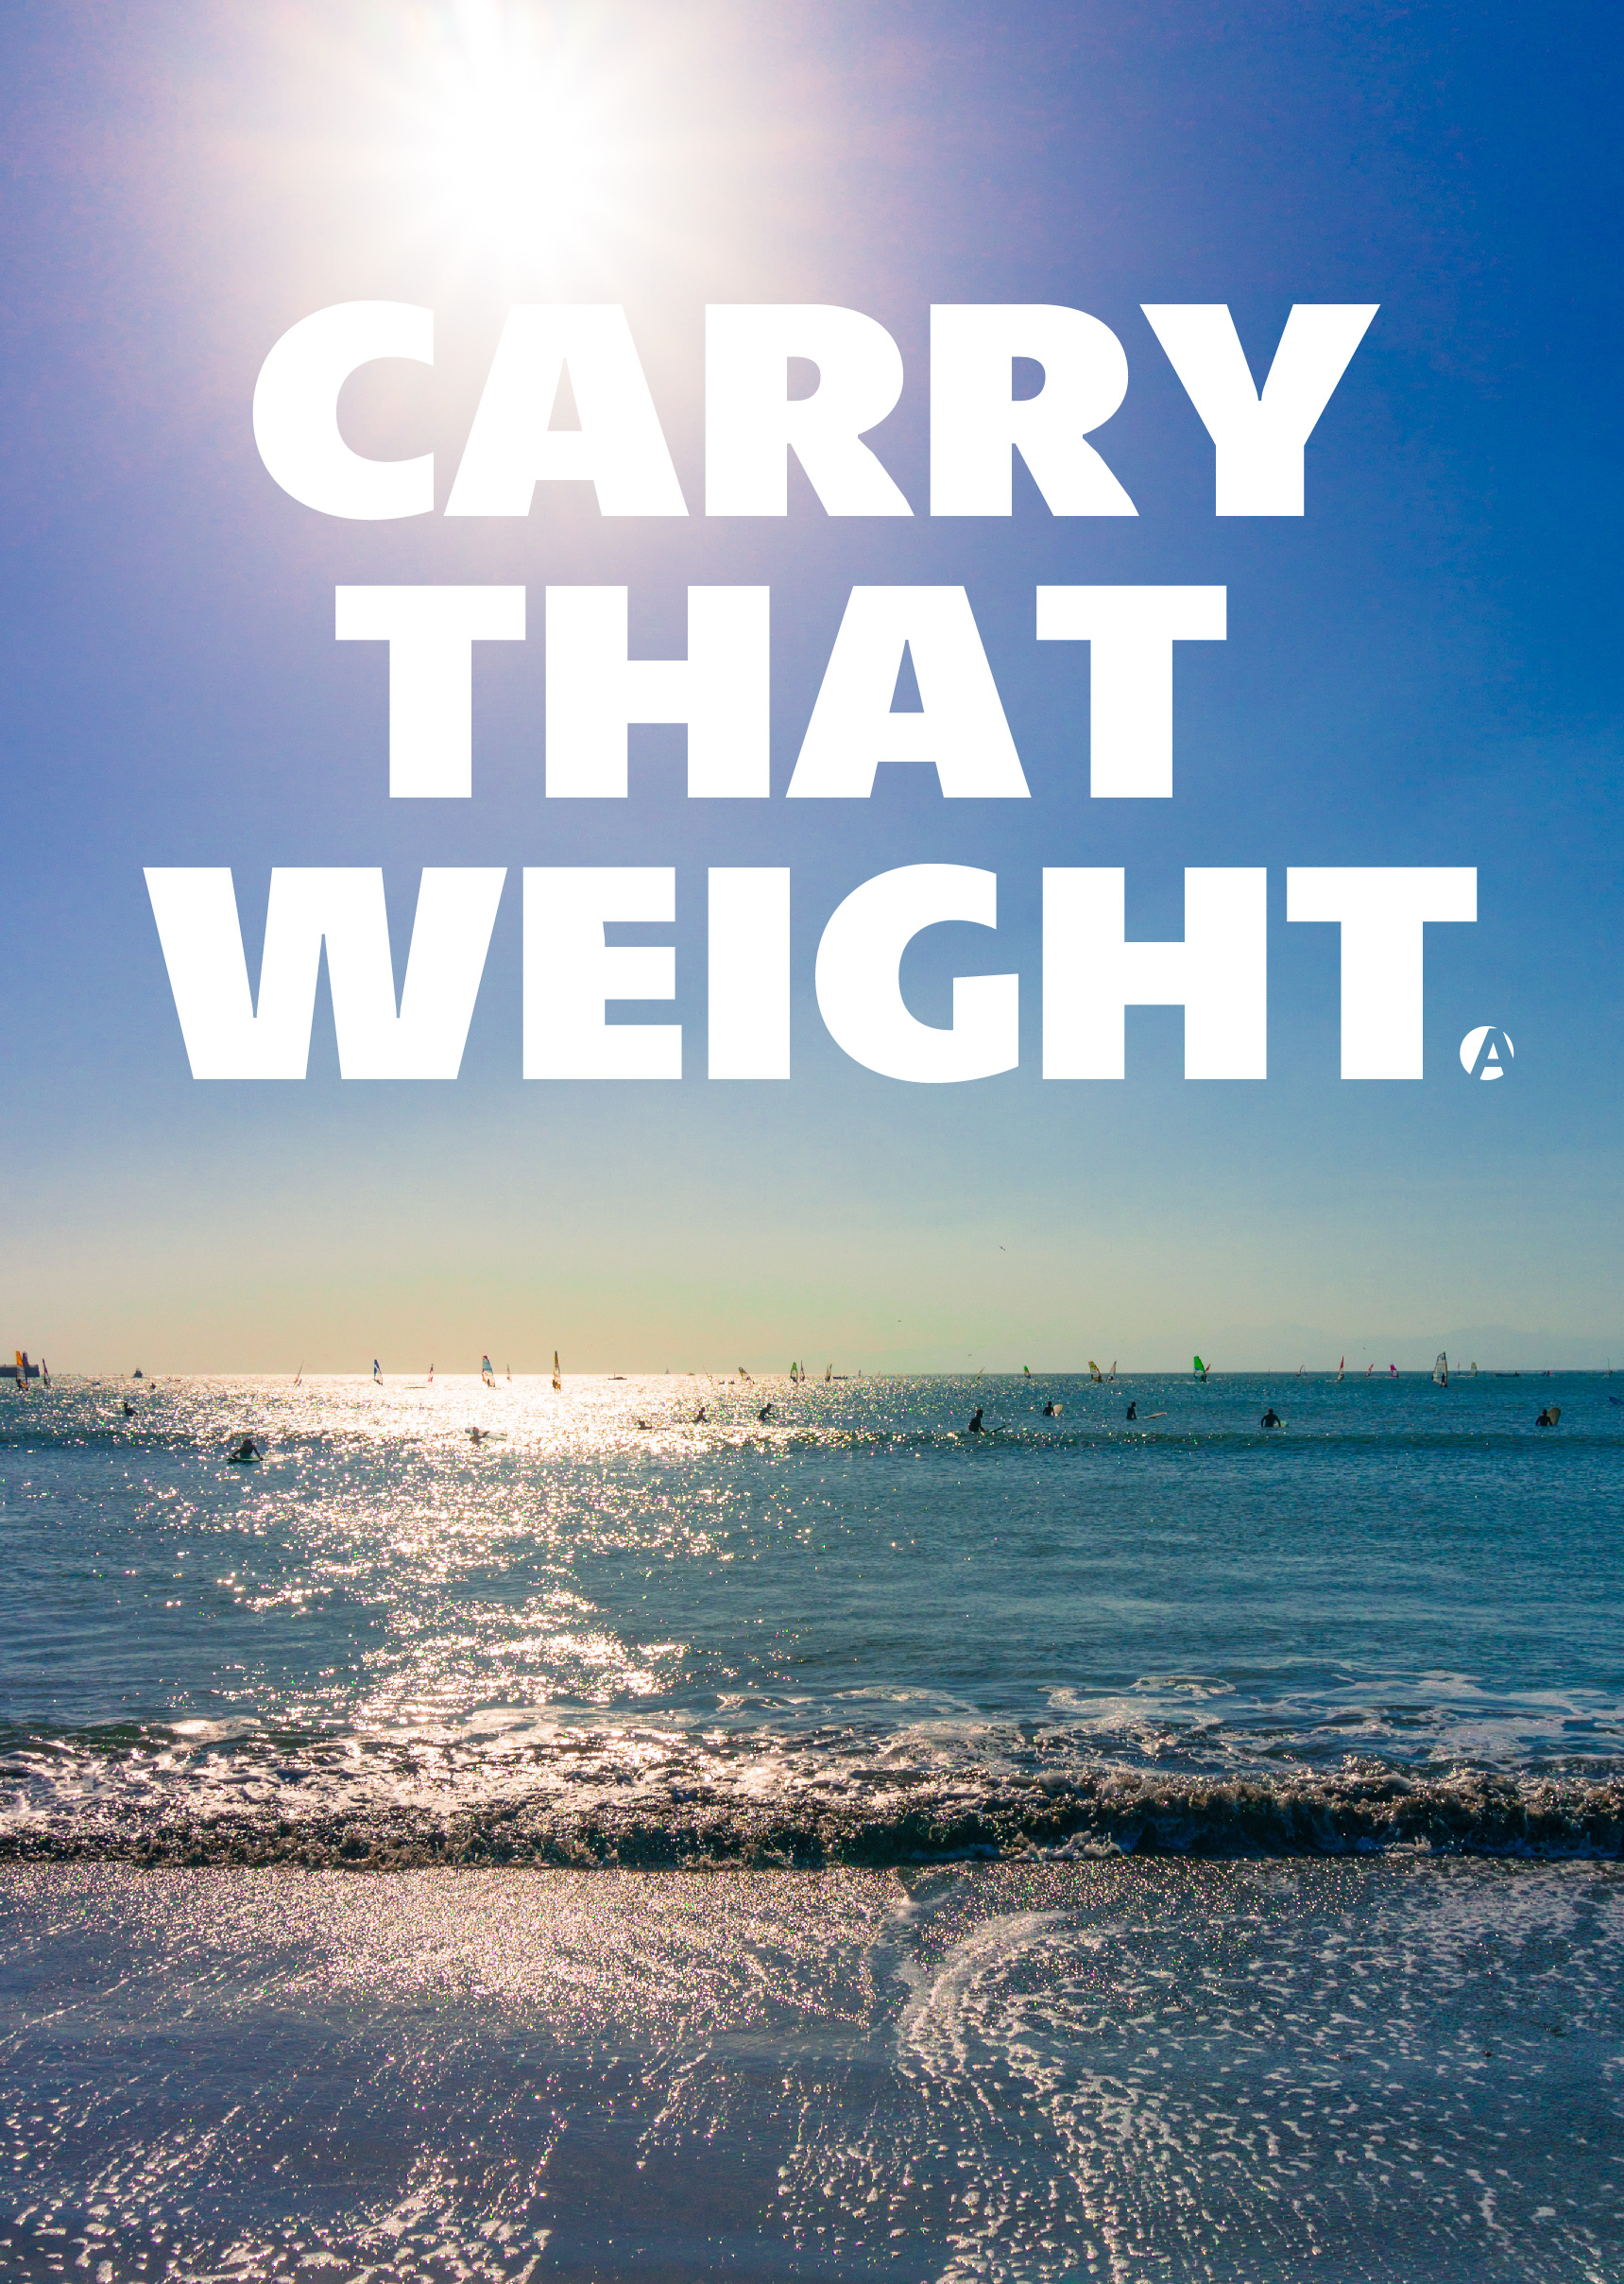 CARRY THAT WEIGHT グラフィックデザイン